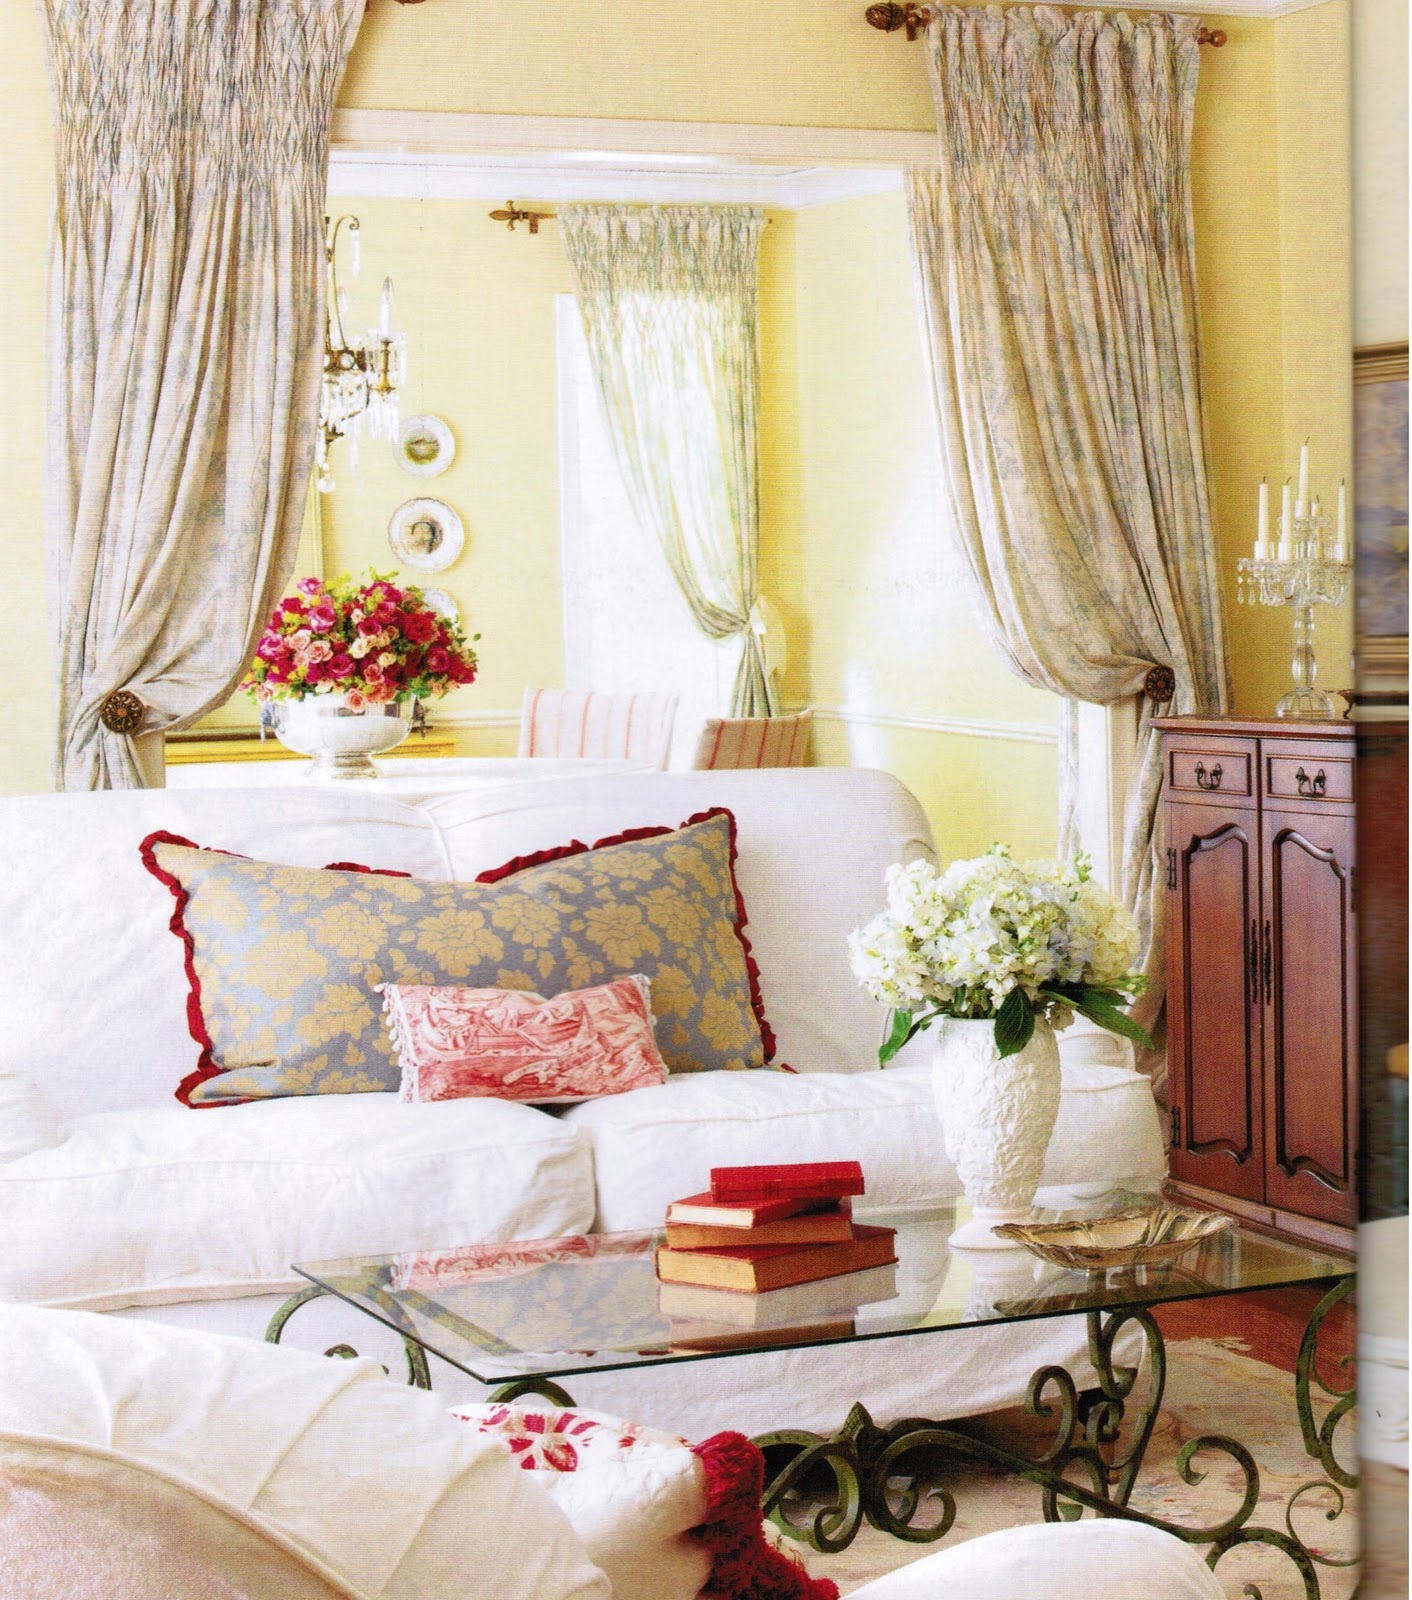 French Country Decor Unique Of French Country Living Room Decorating Ideas Image